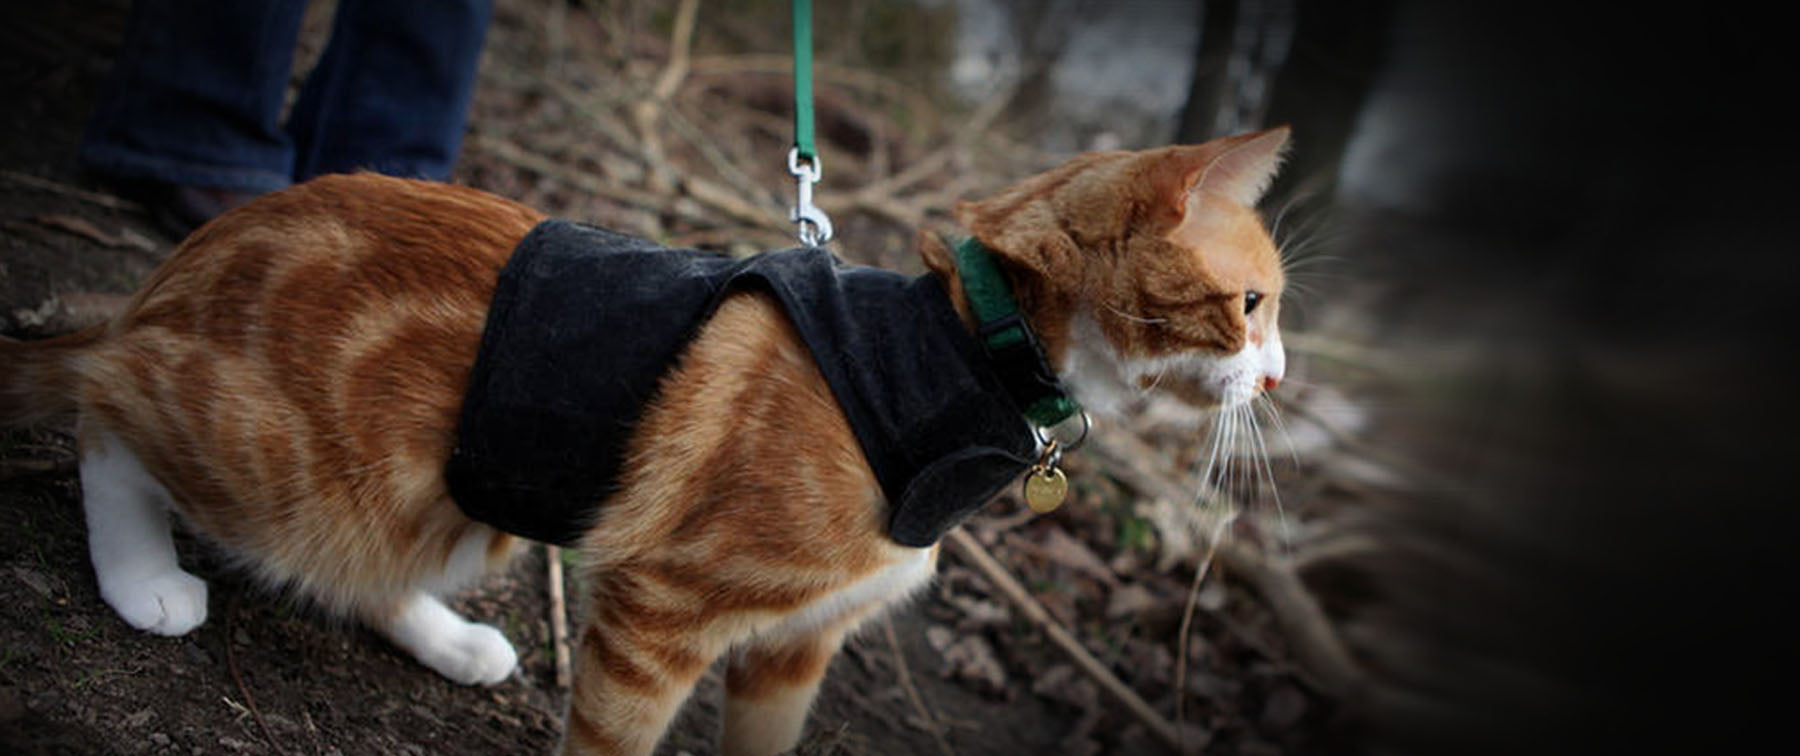 Walking your Cat is a bad thing? RSPCA says